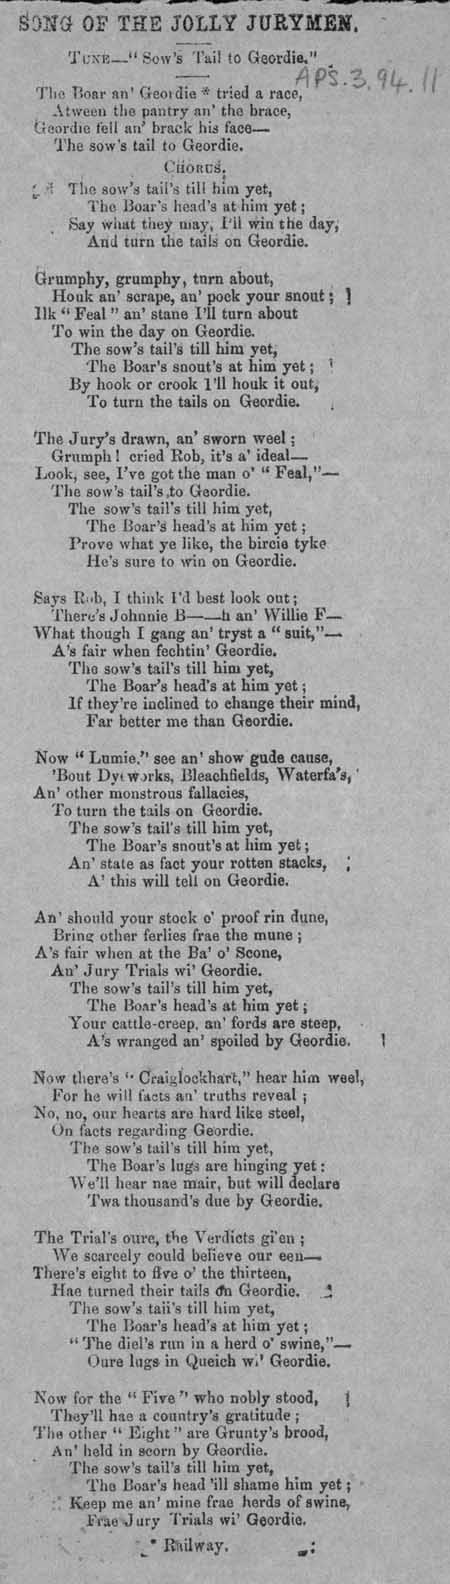 Broadside ballad entitled 'Song of the Jolly Jurymen'